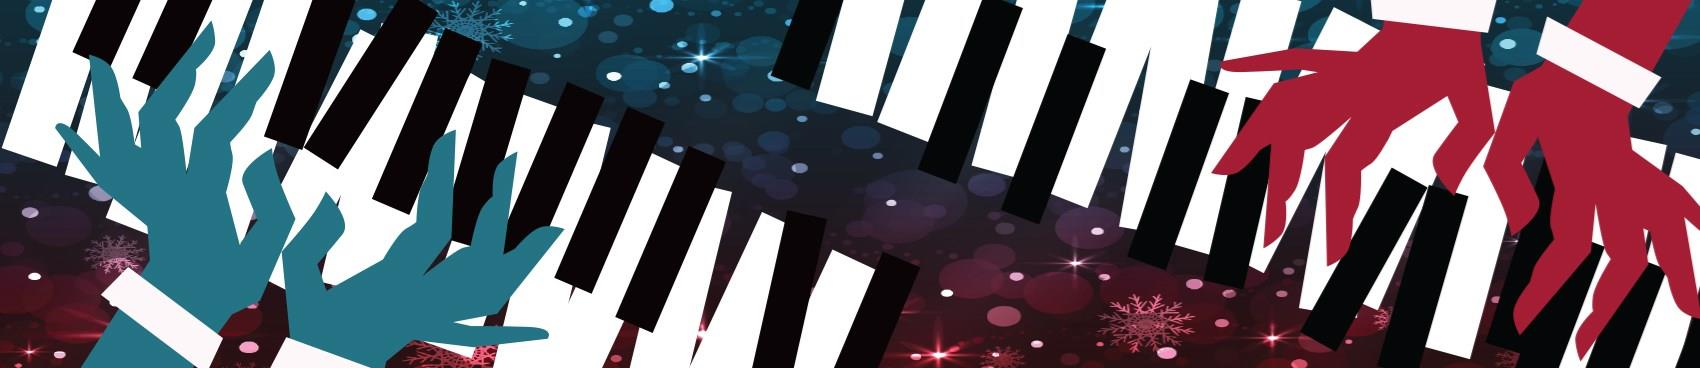 Napa Valley Winter Music Series - Dueling Pianos